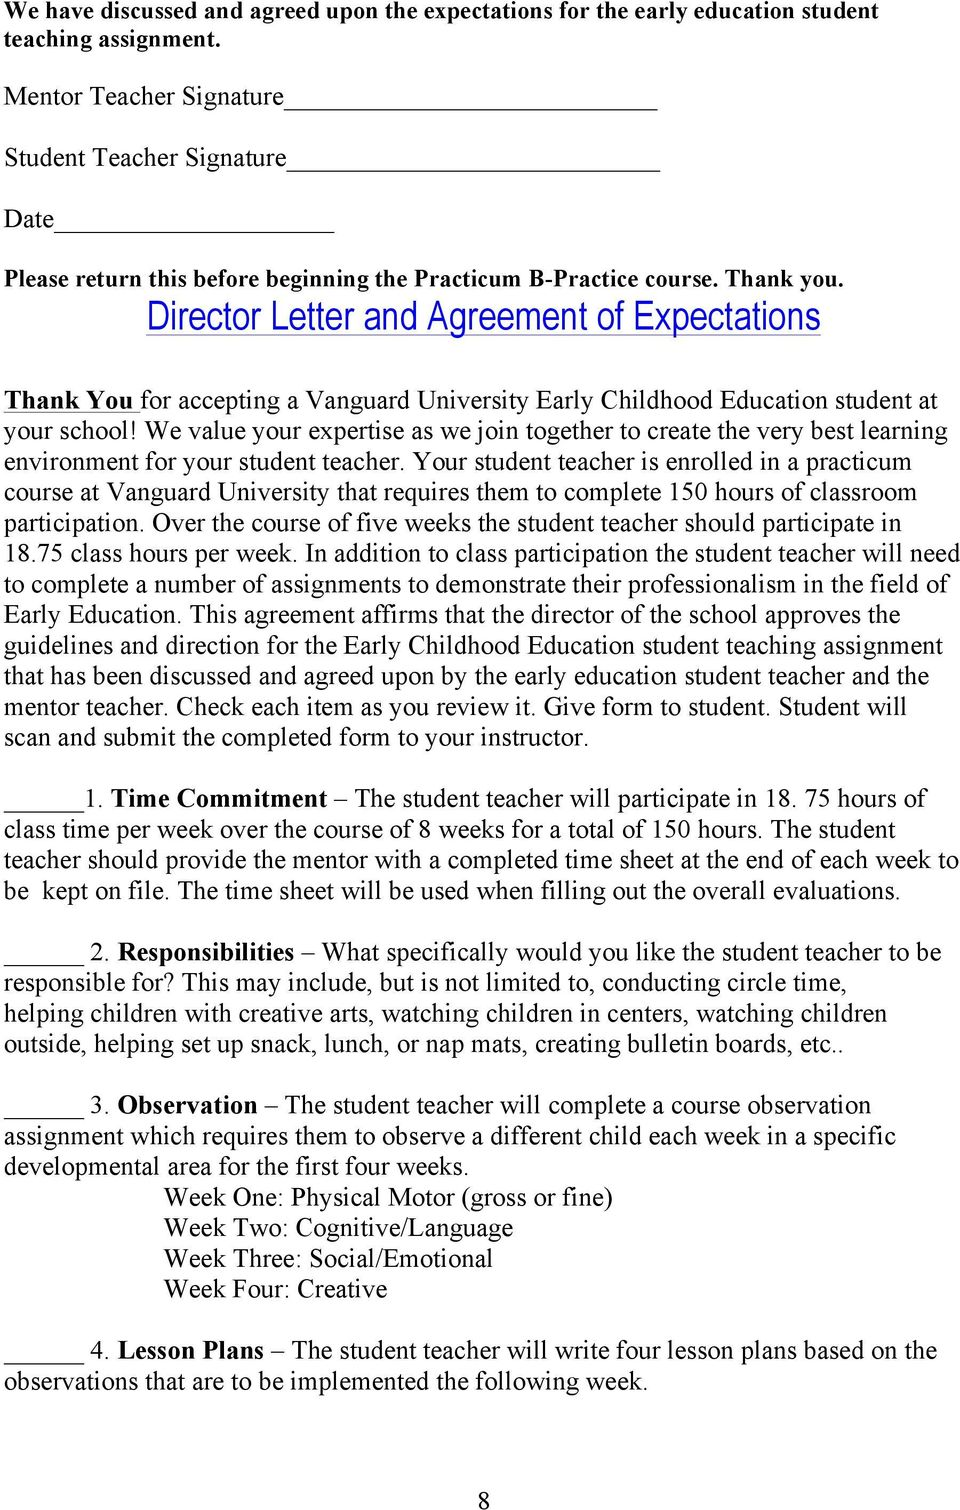 Director Letter and Agreement of Expectations Thank You for accepting a Vanguard University Early Childhood Education student at your school!